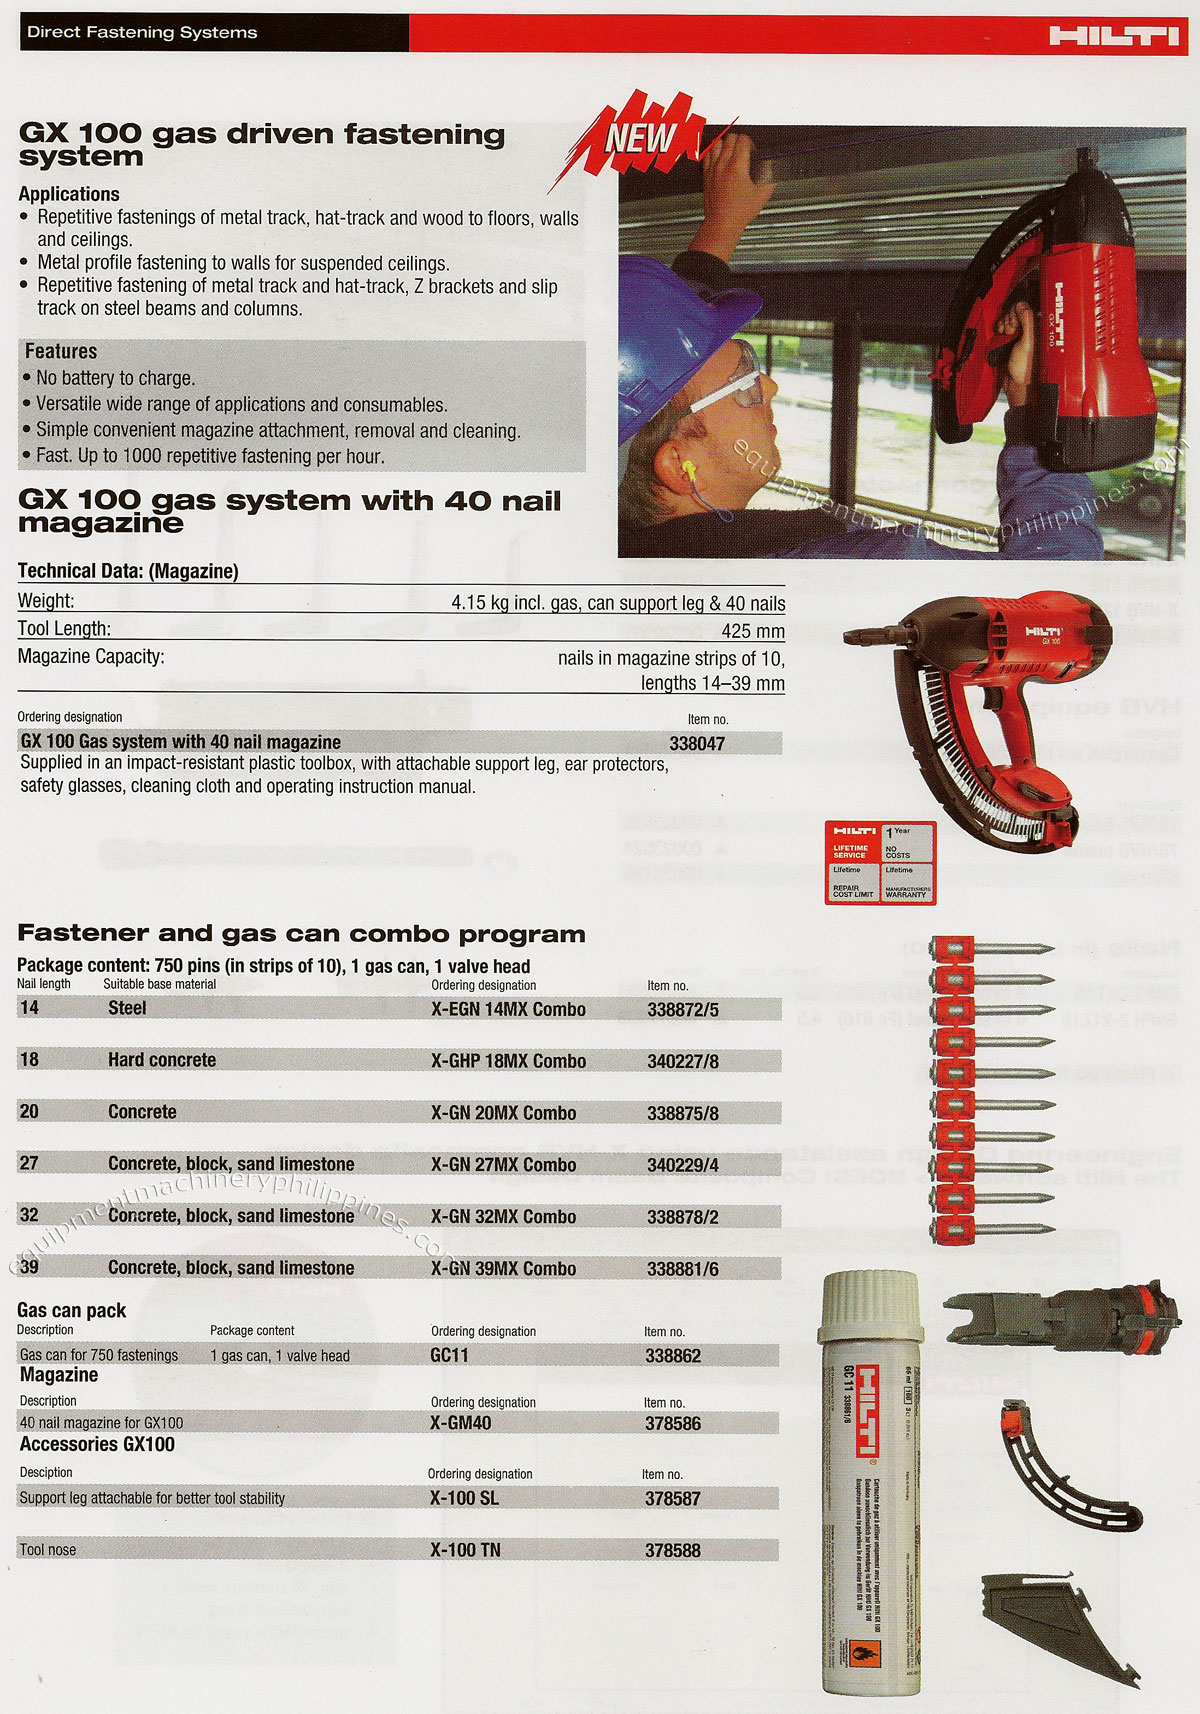 Gx 100 Gas Driven Fastening System Philippines